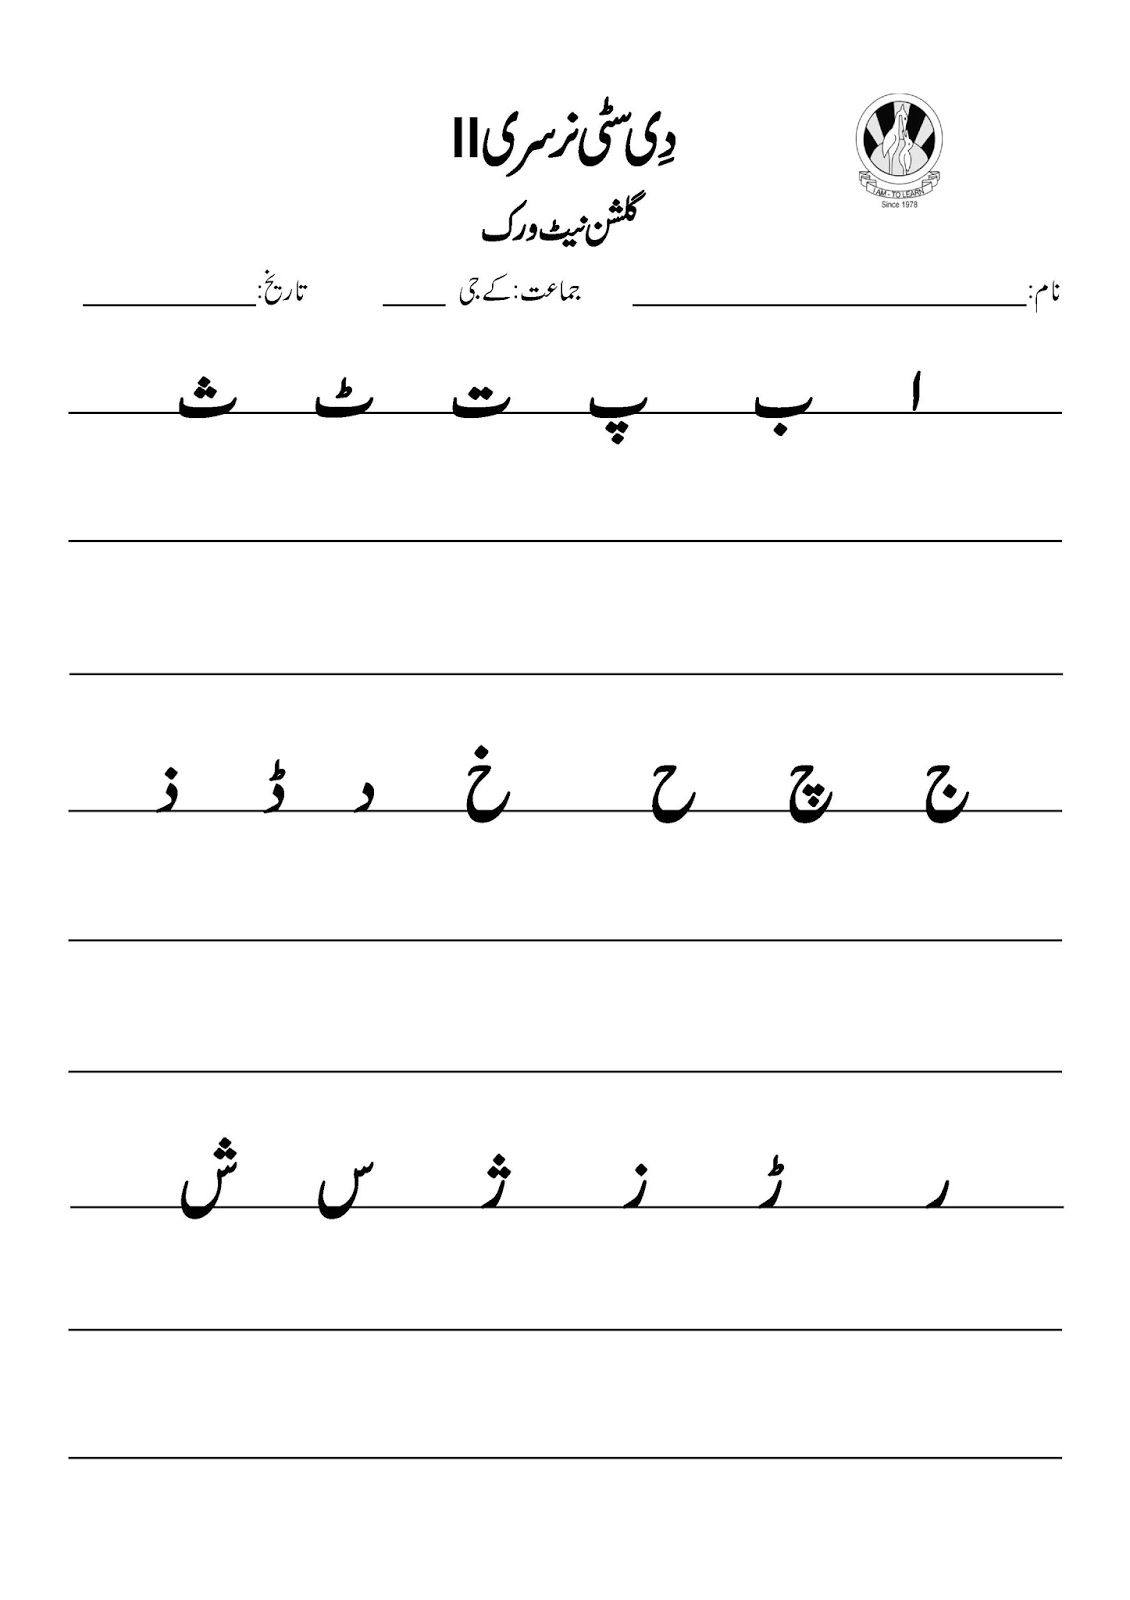 Sr Gulshan The City Nursery-Ii: Urdu First Term | Nursery inside Urdu Letters Tracing Worksheets